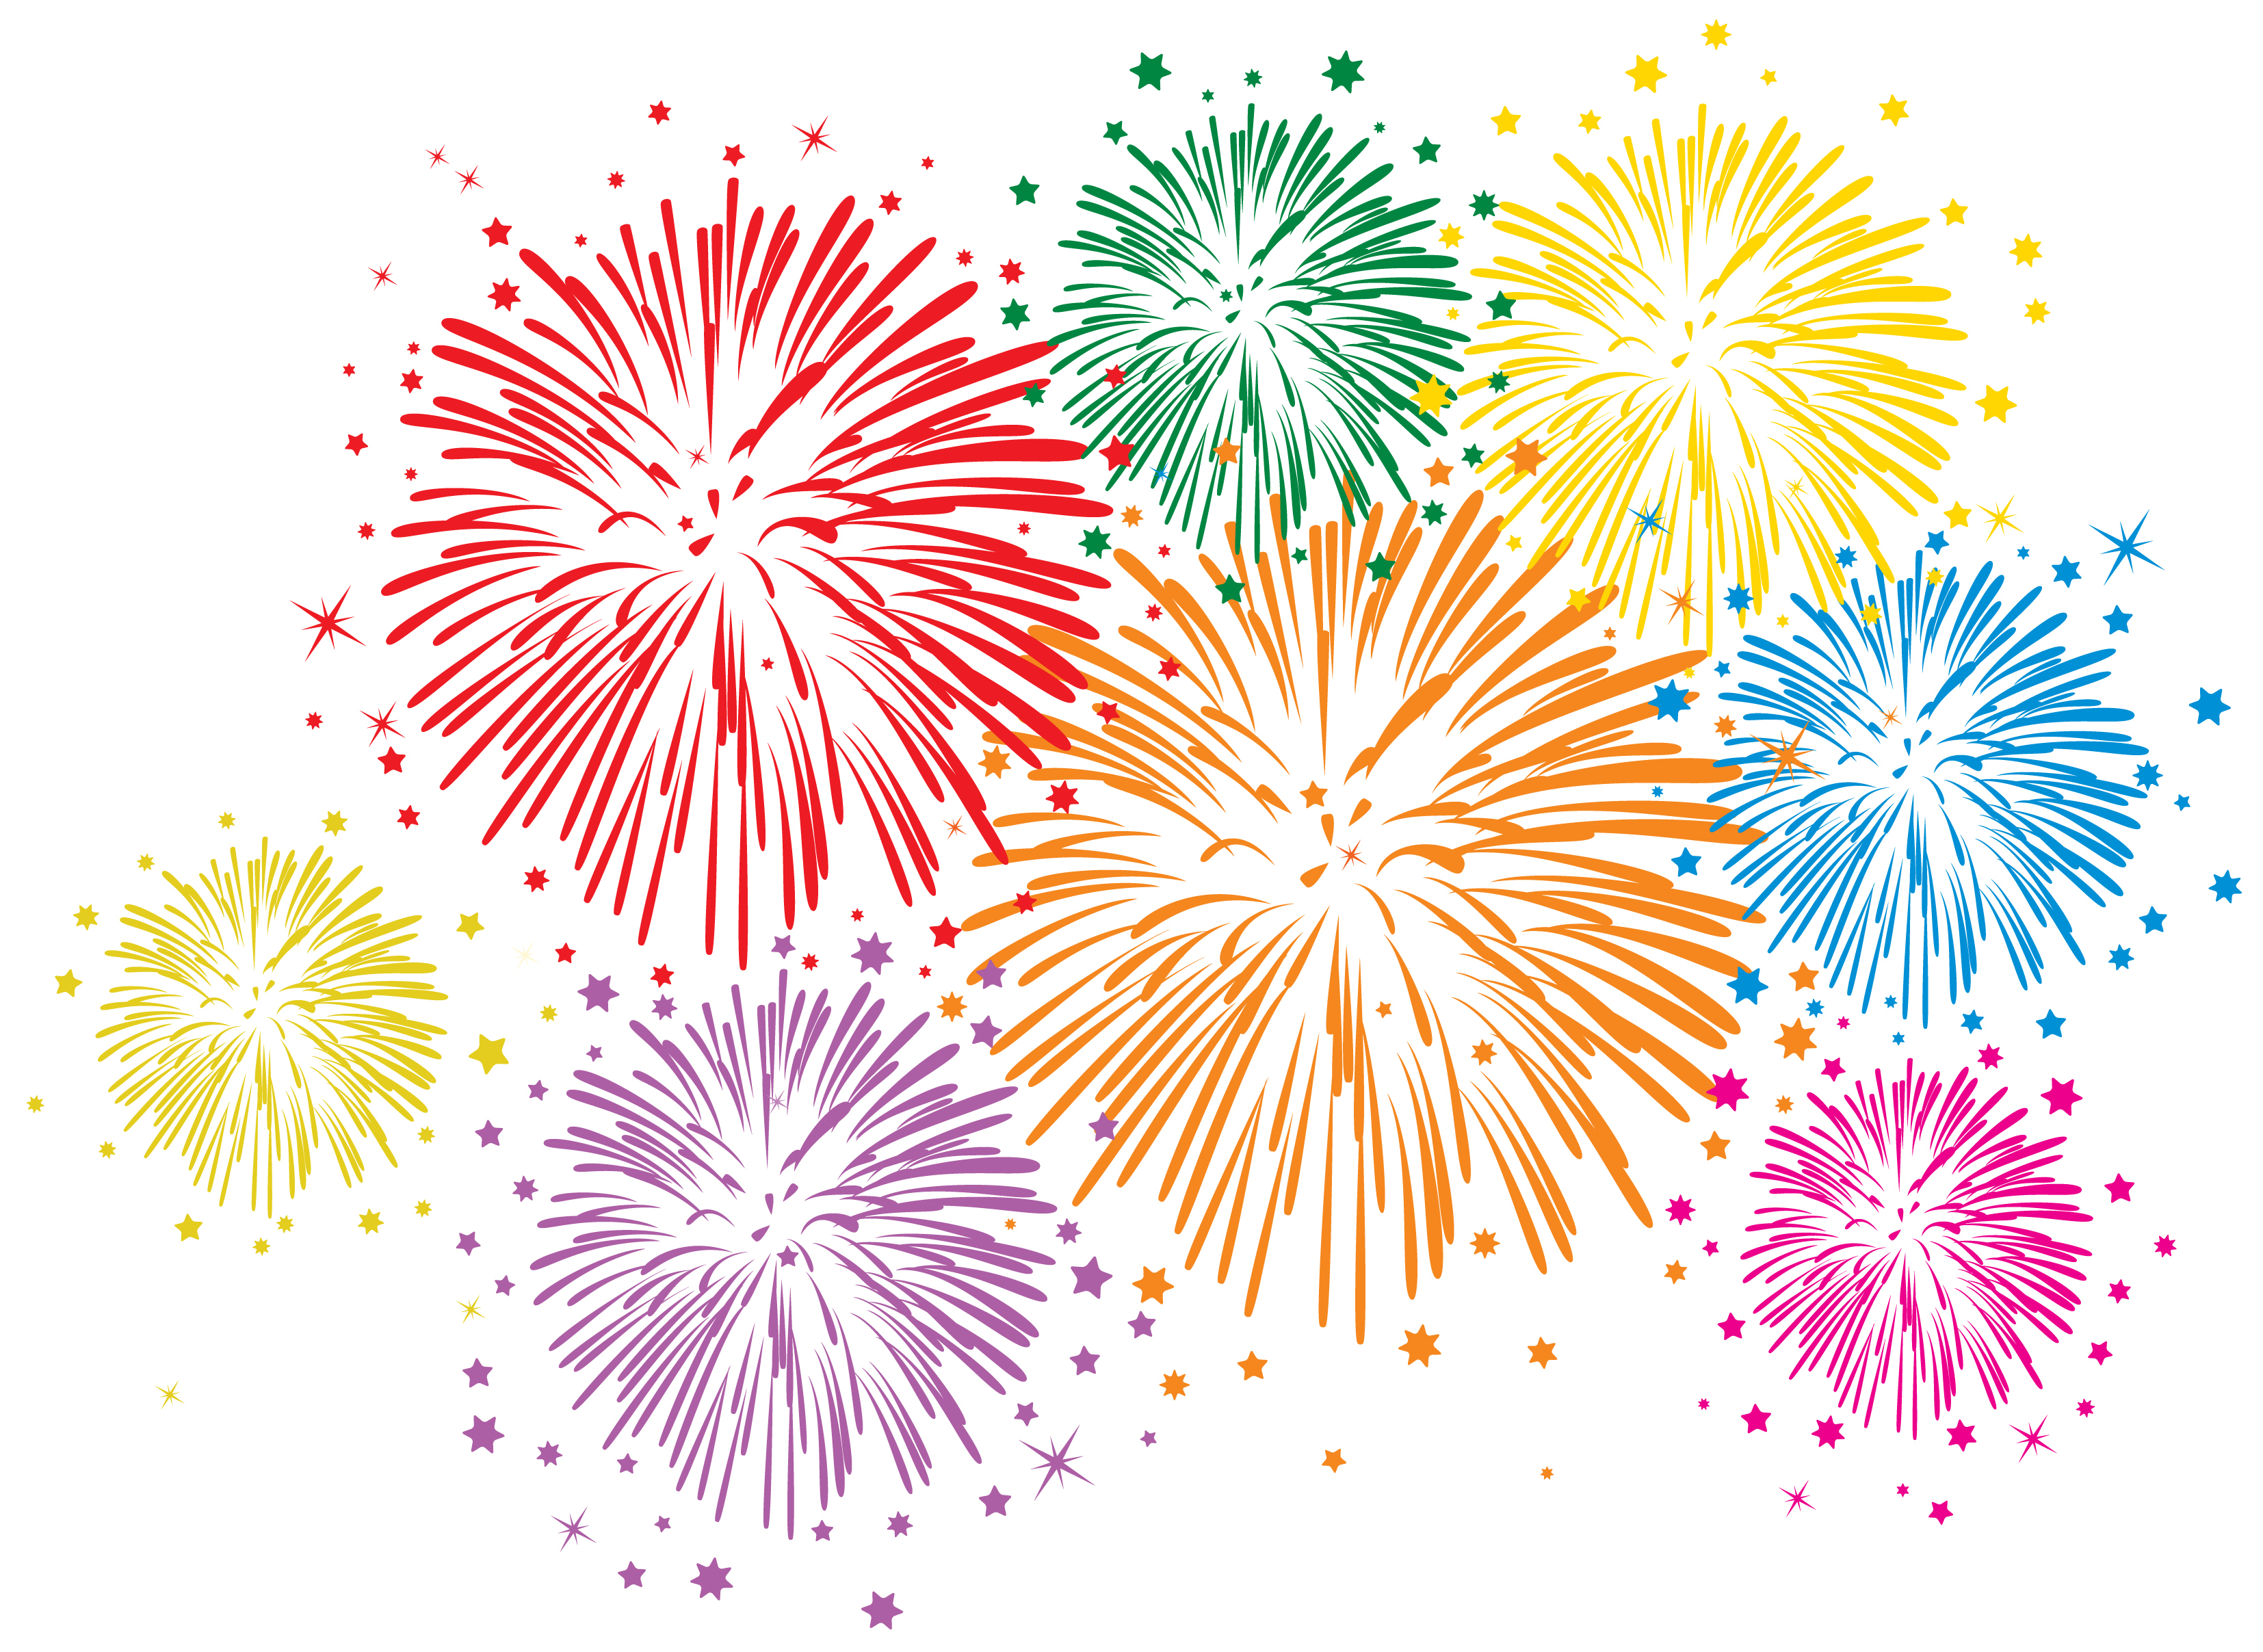 Fireworks clipart #5, Download drawings